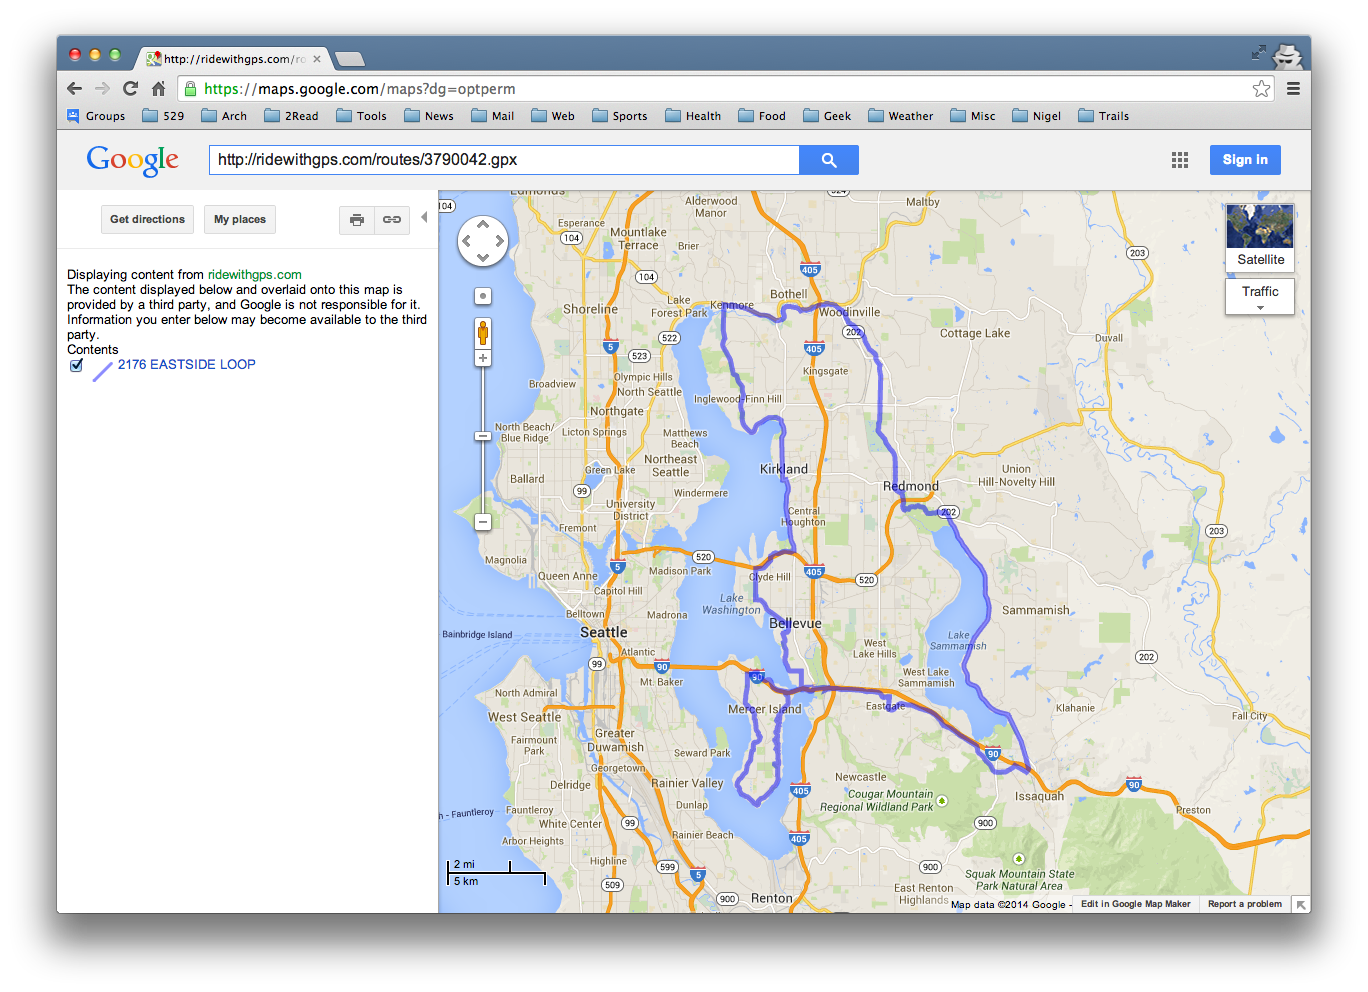 keithmo bikes: Fun and Games with Google Maps and GPX Files